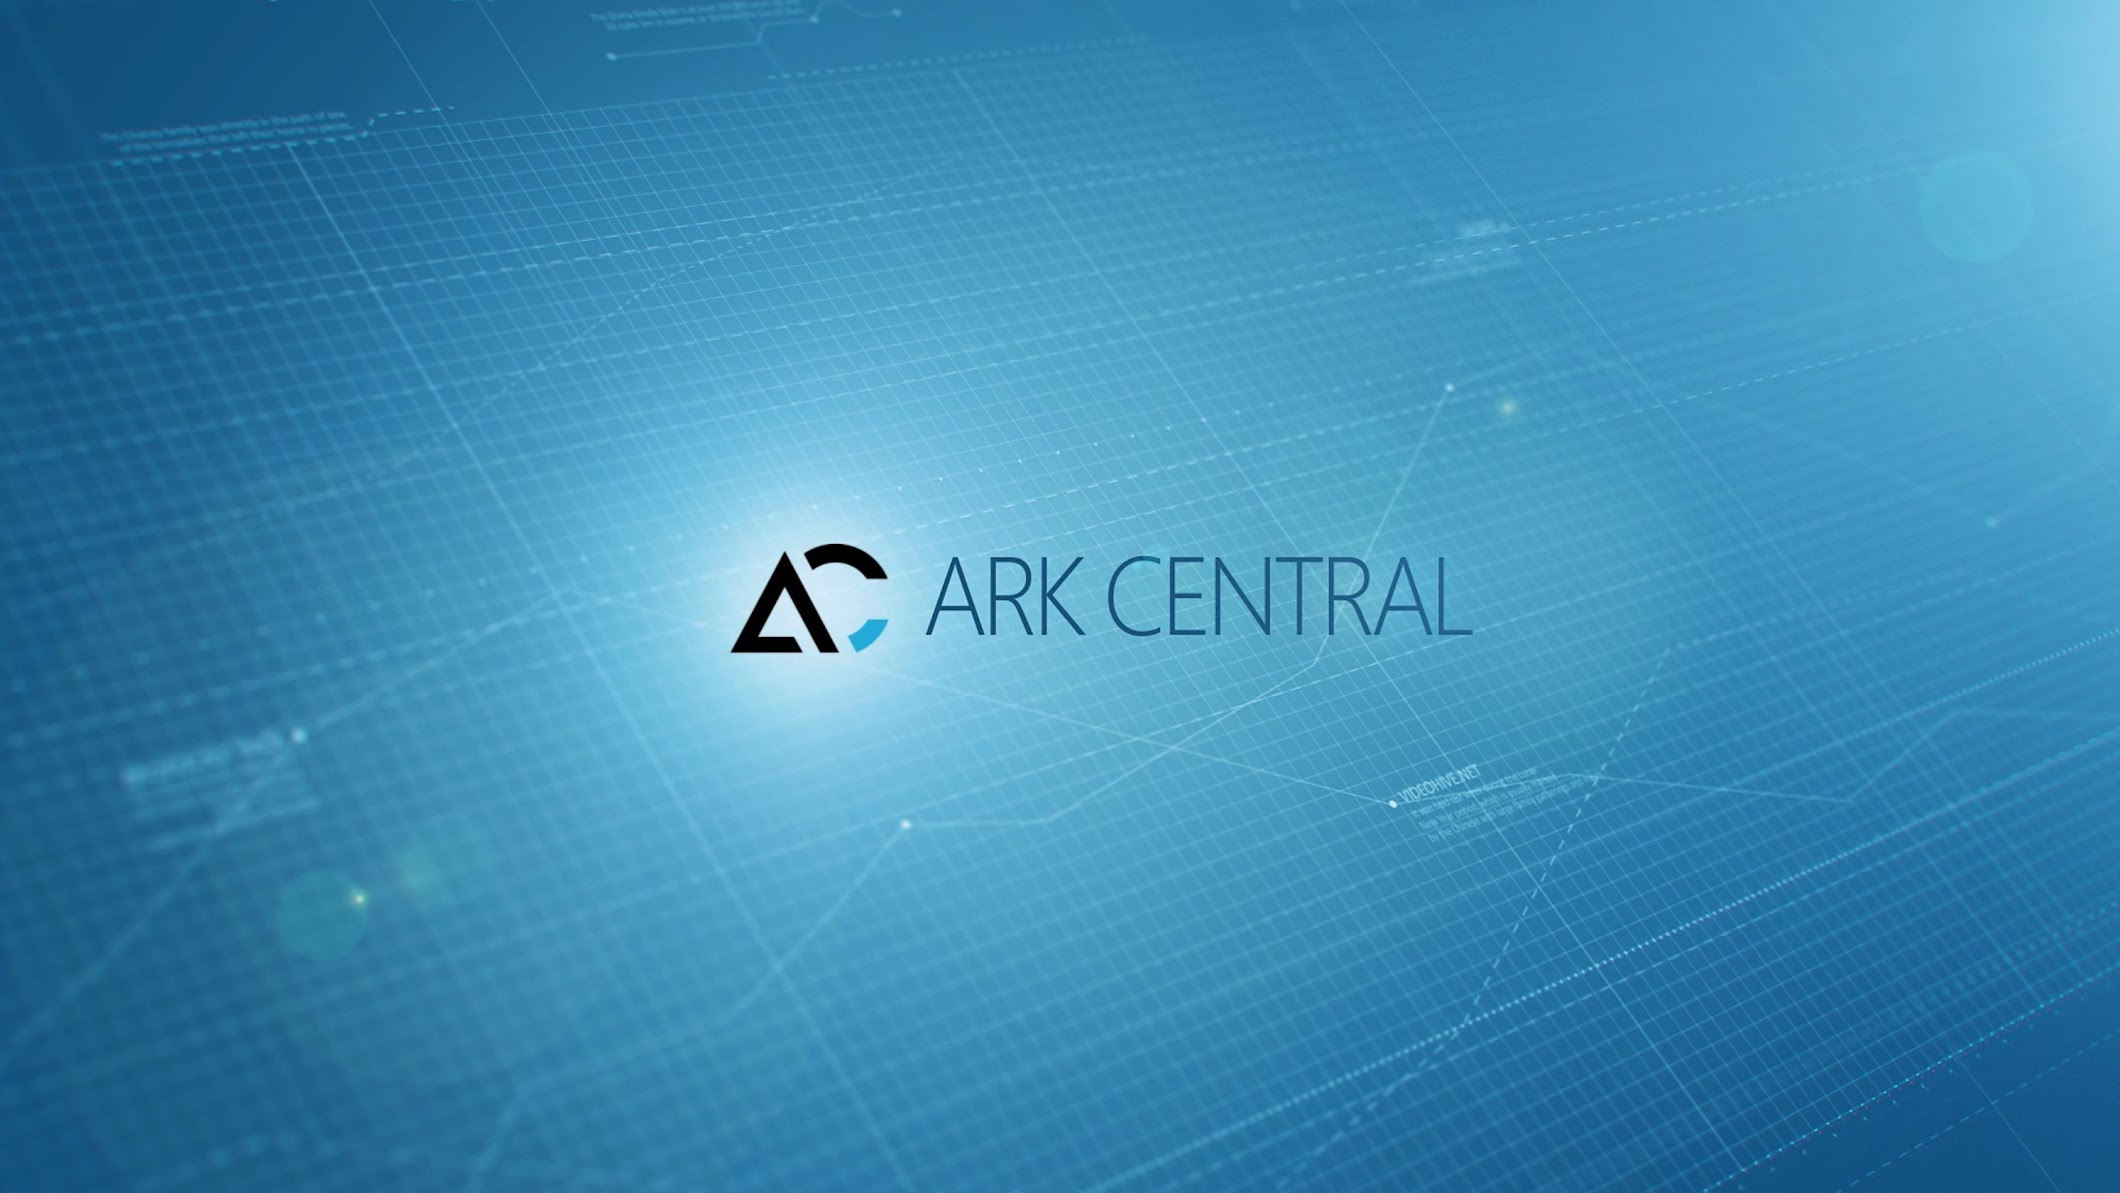 Ark Central